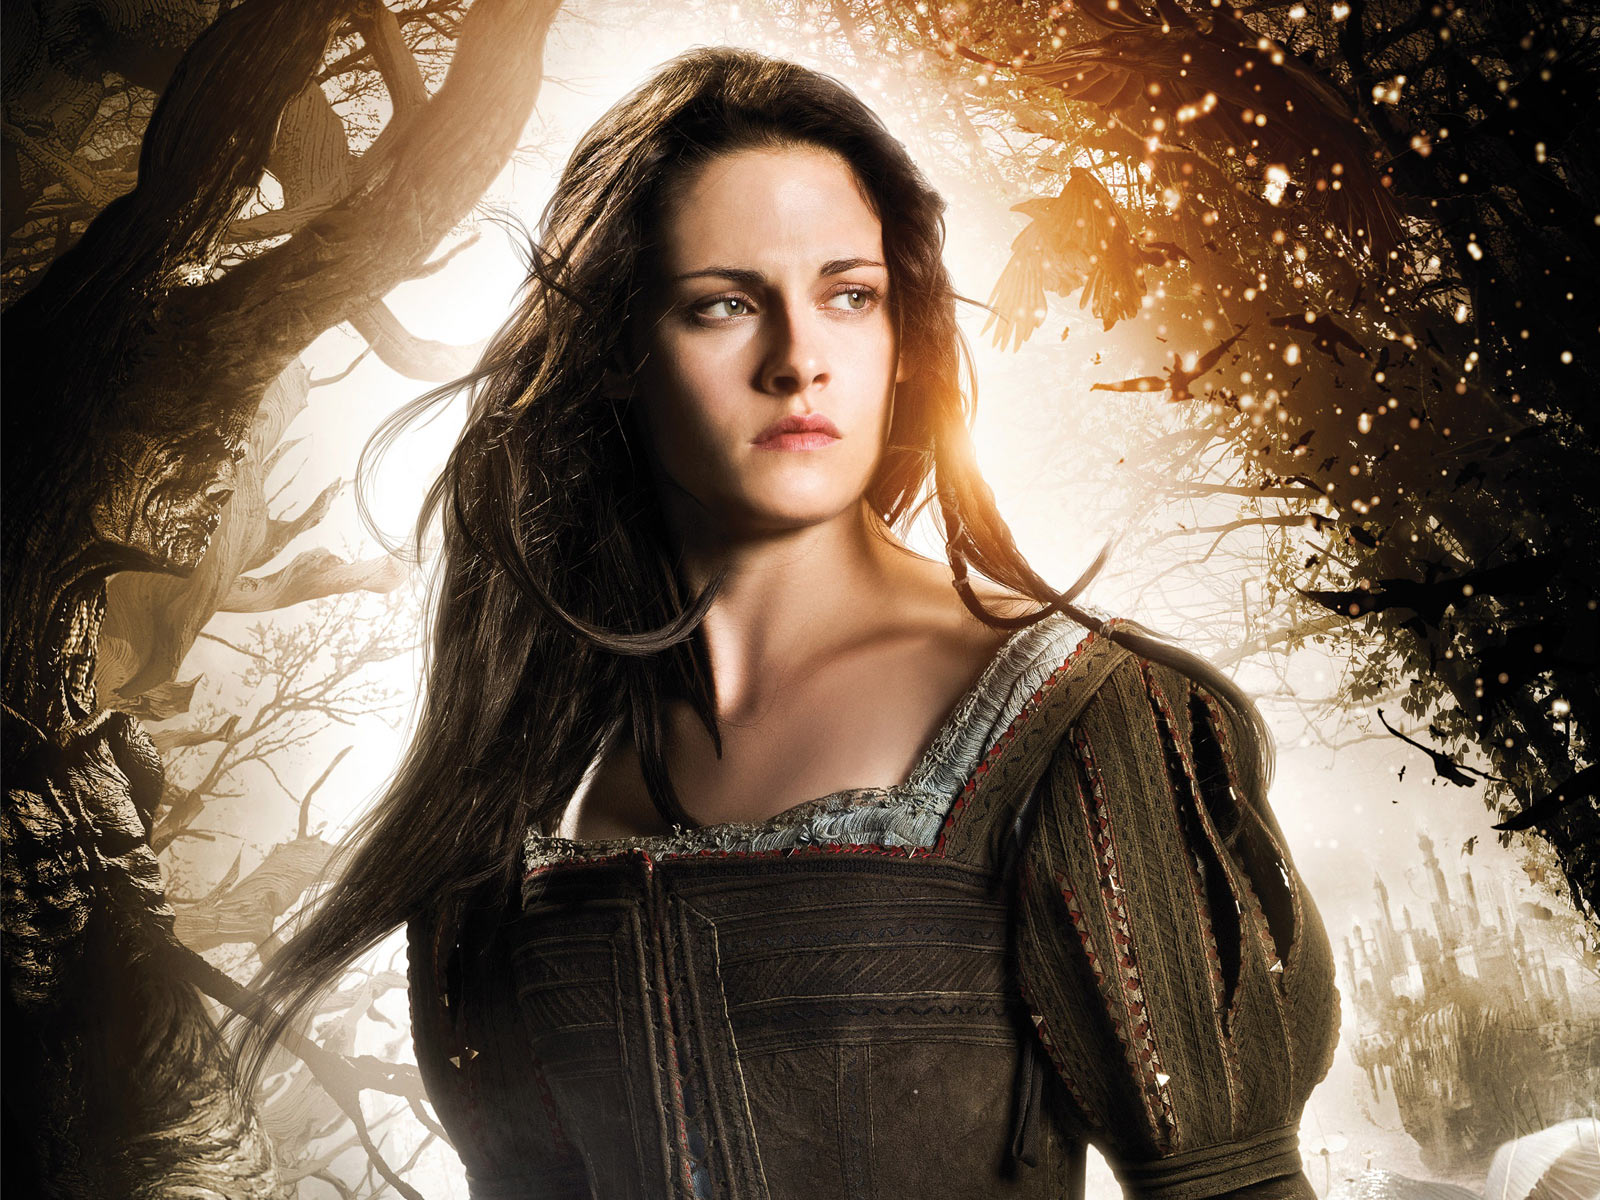 snow white and the huntsman wallpaper 15130